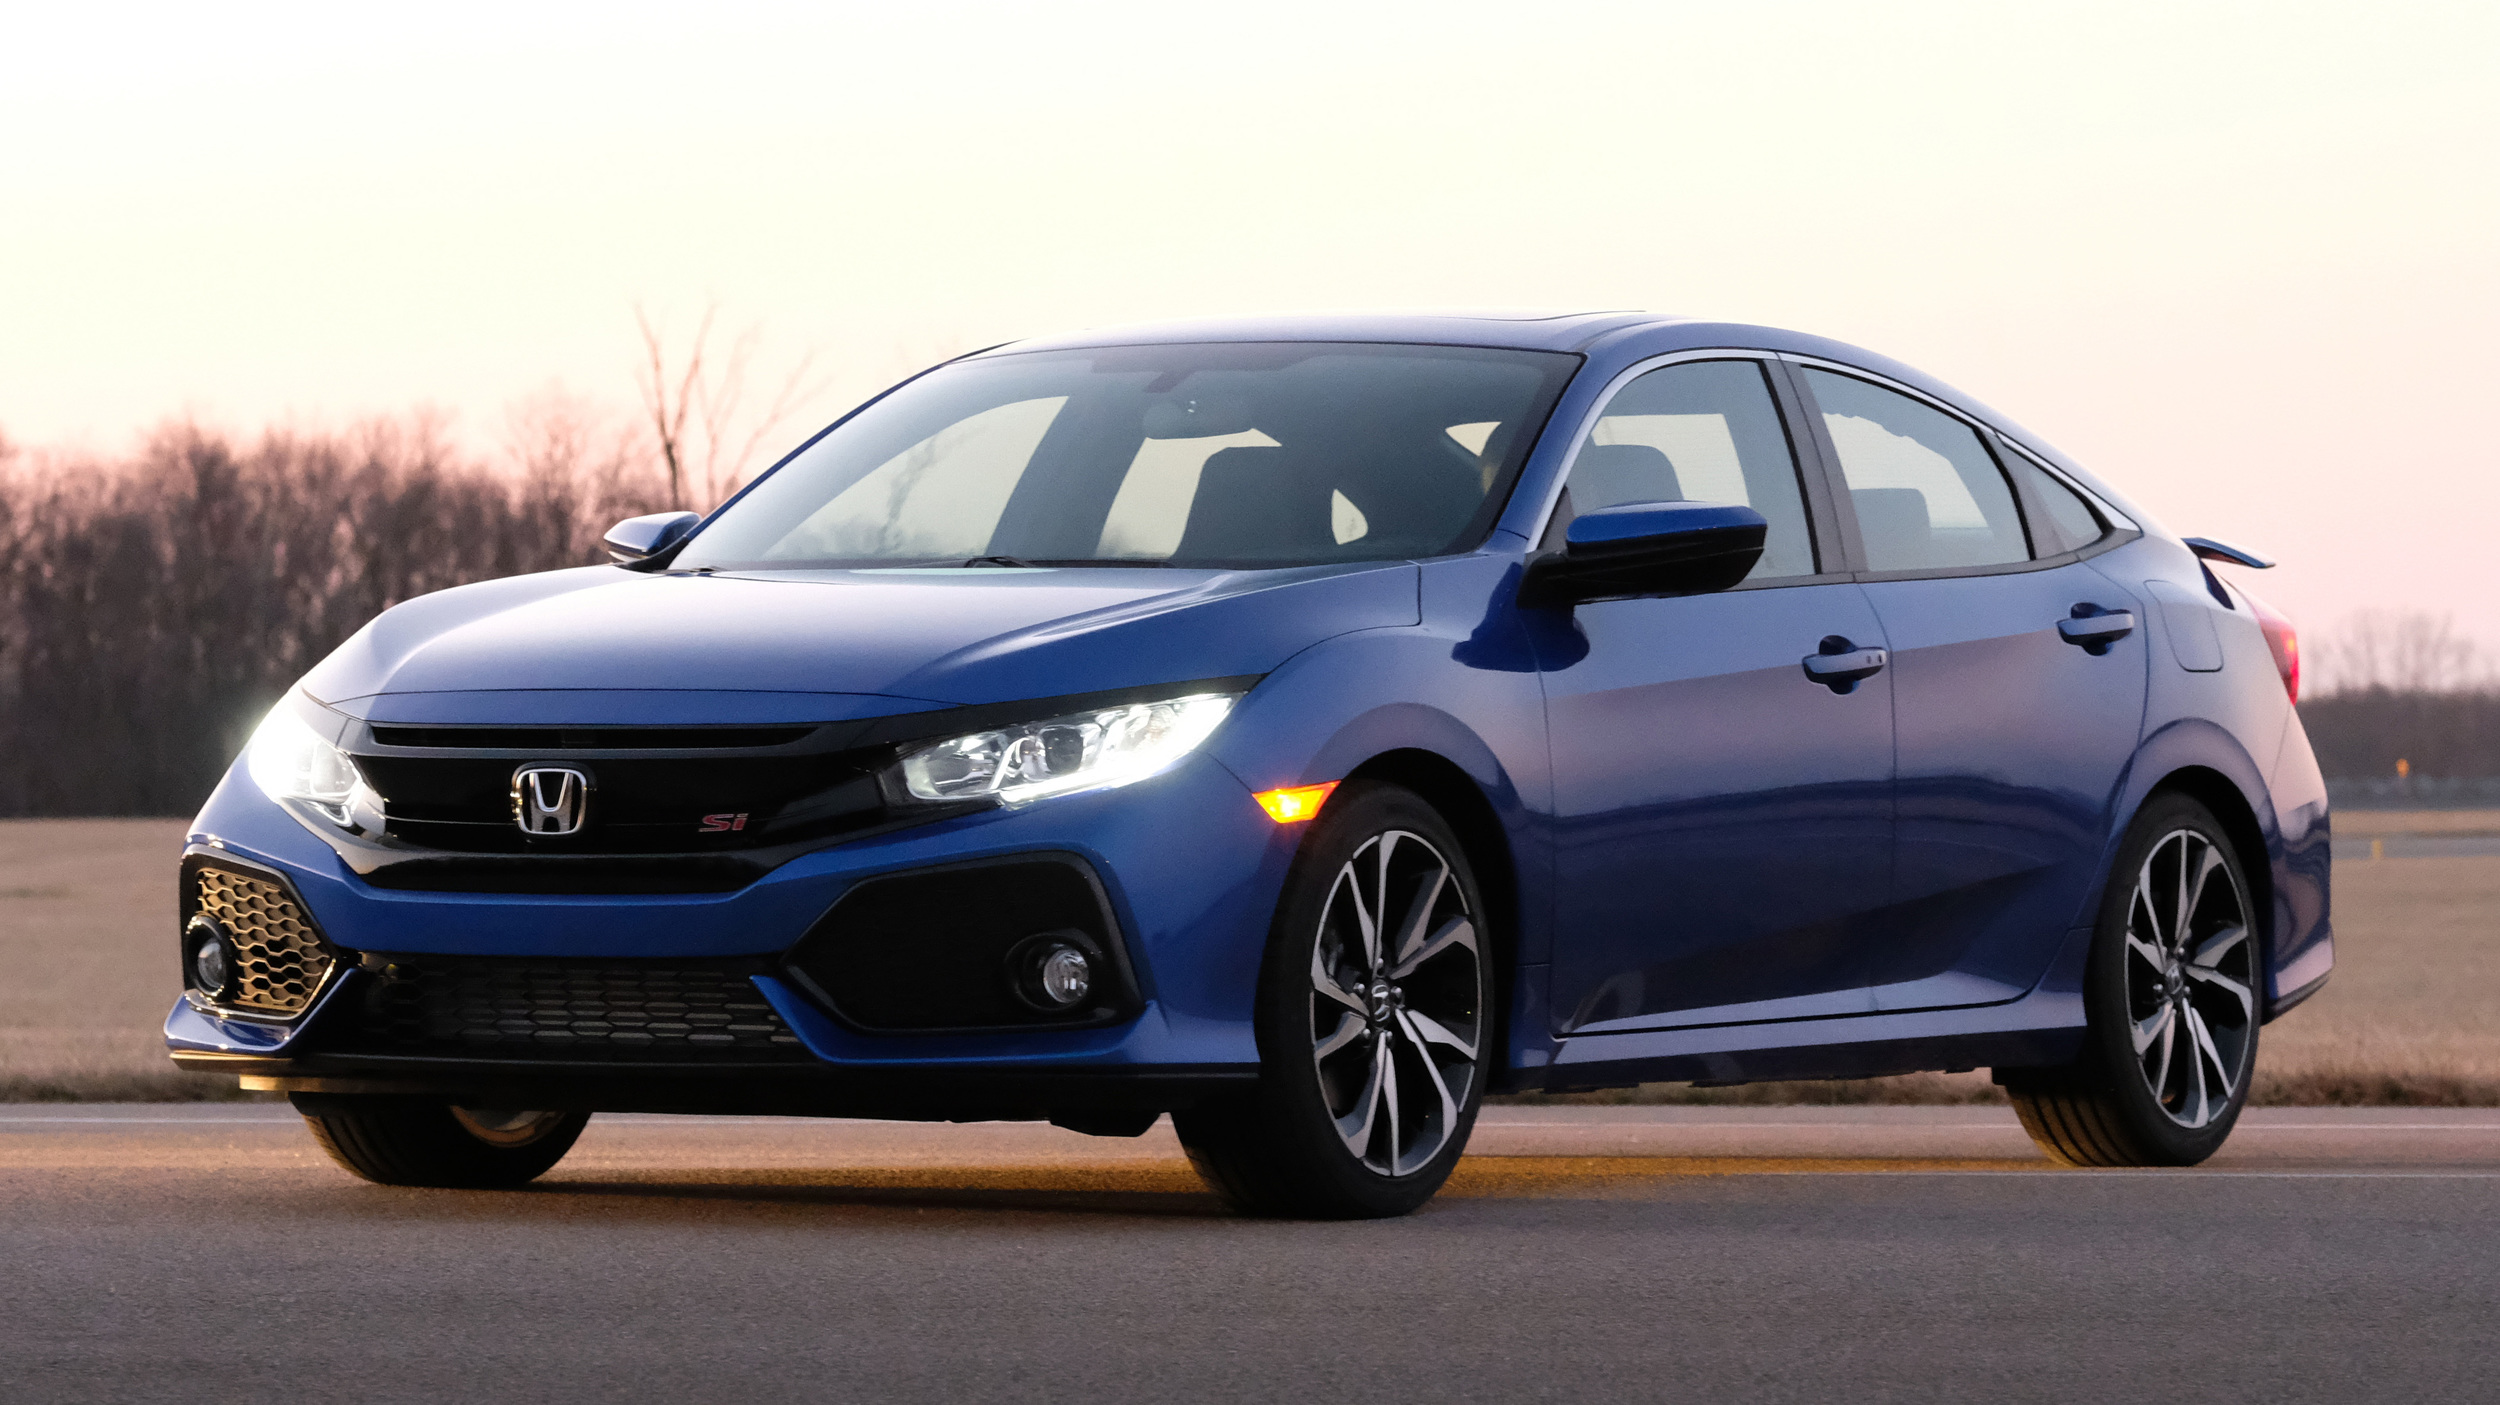 Honda Civic Si 2018 (3)